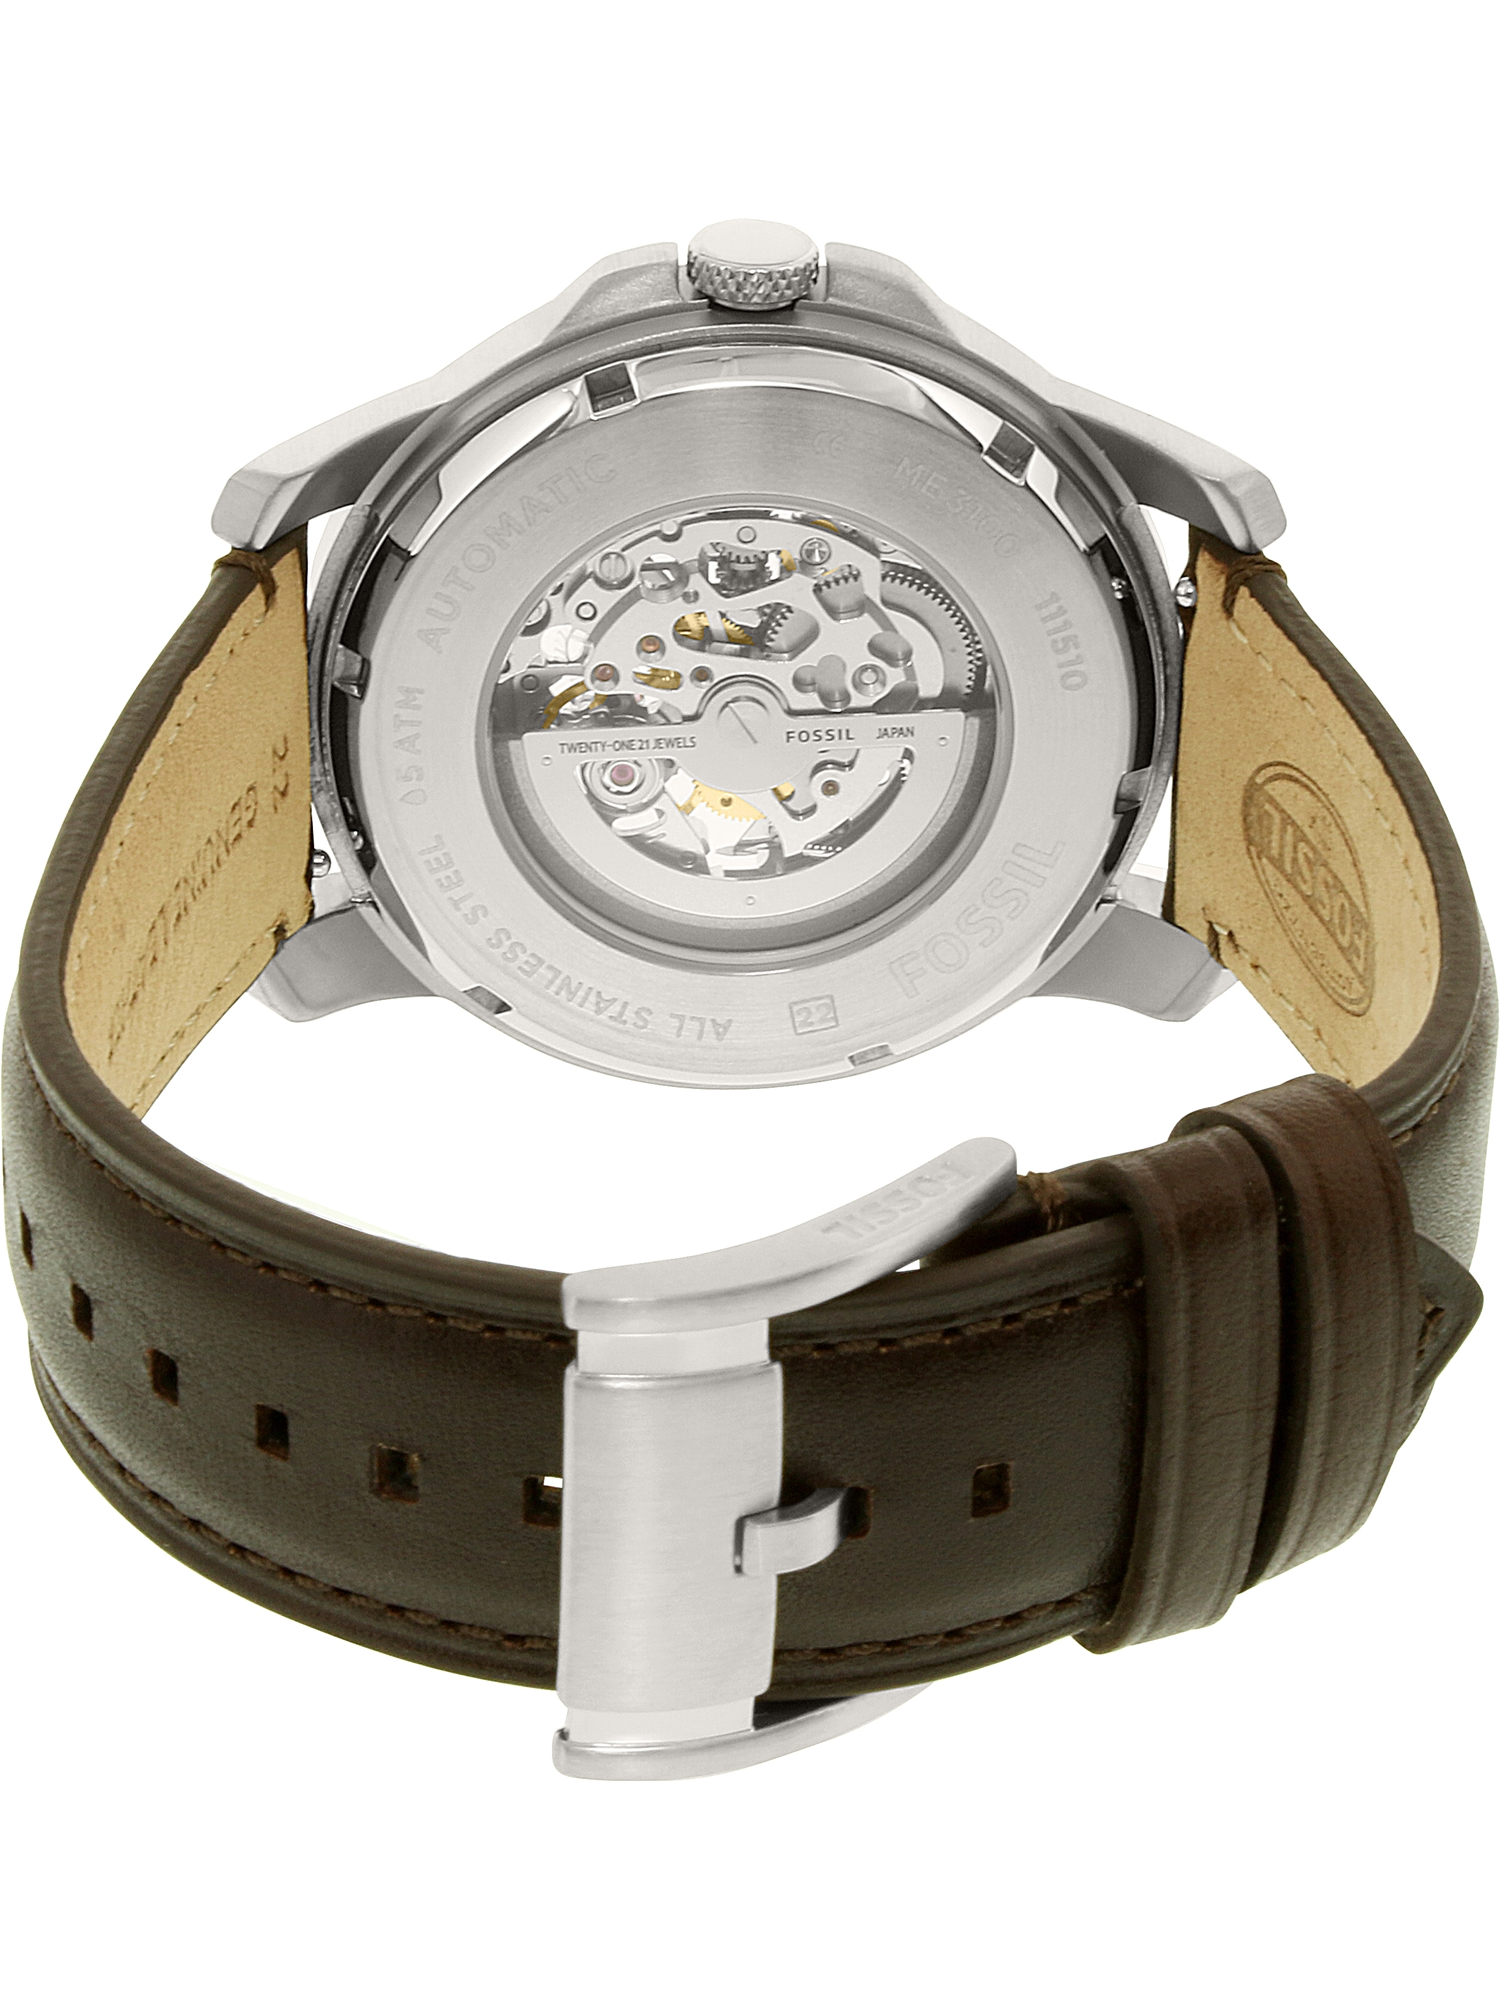 Fossil Men's Grant ME3100 Silver Leather Japanese Automatic Dress Watch   Walmart Canada